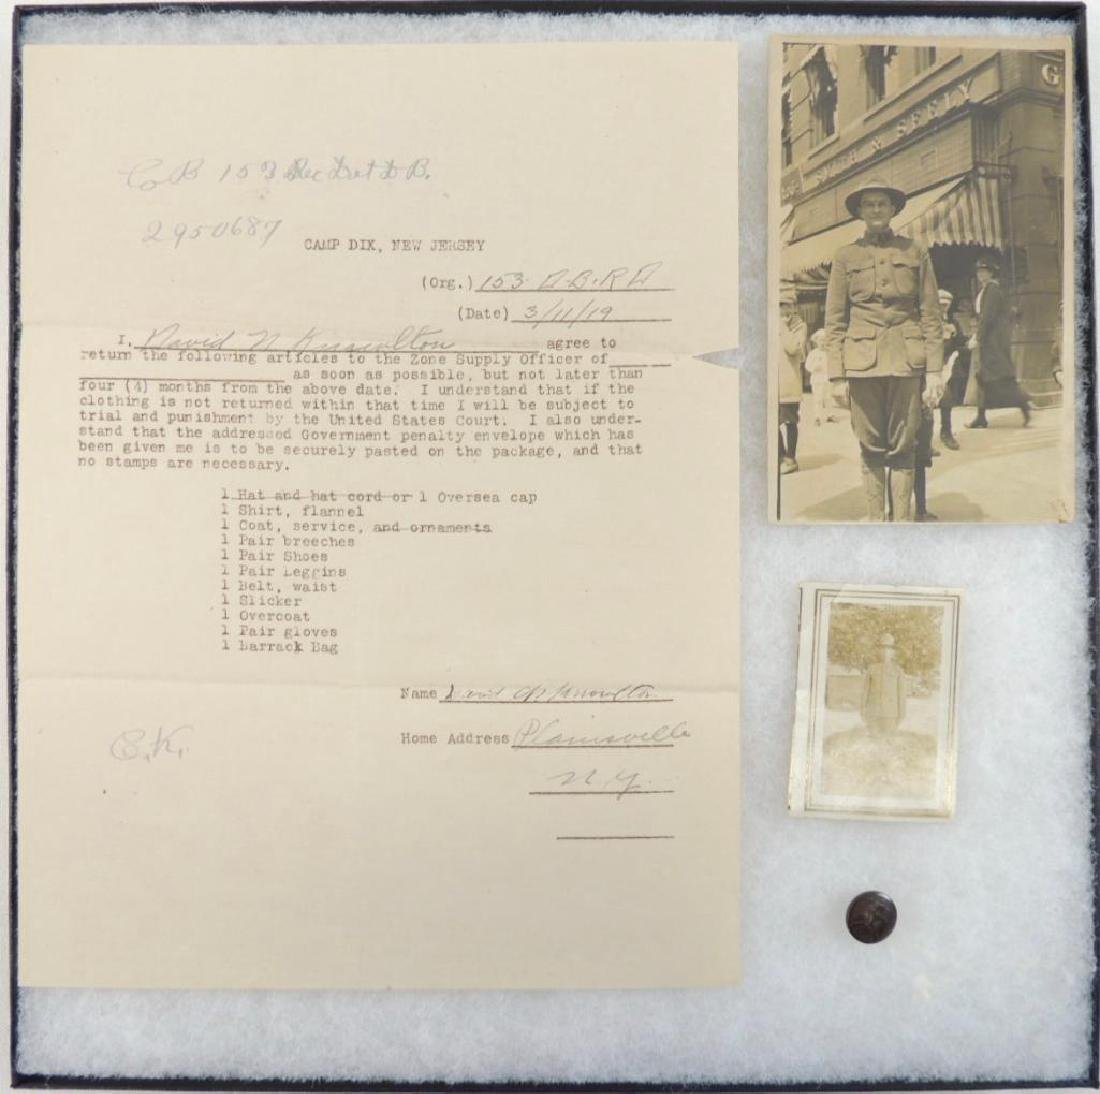 WW1 U.S. Army Soldier Photograph and Document